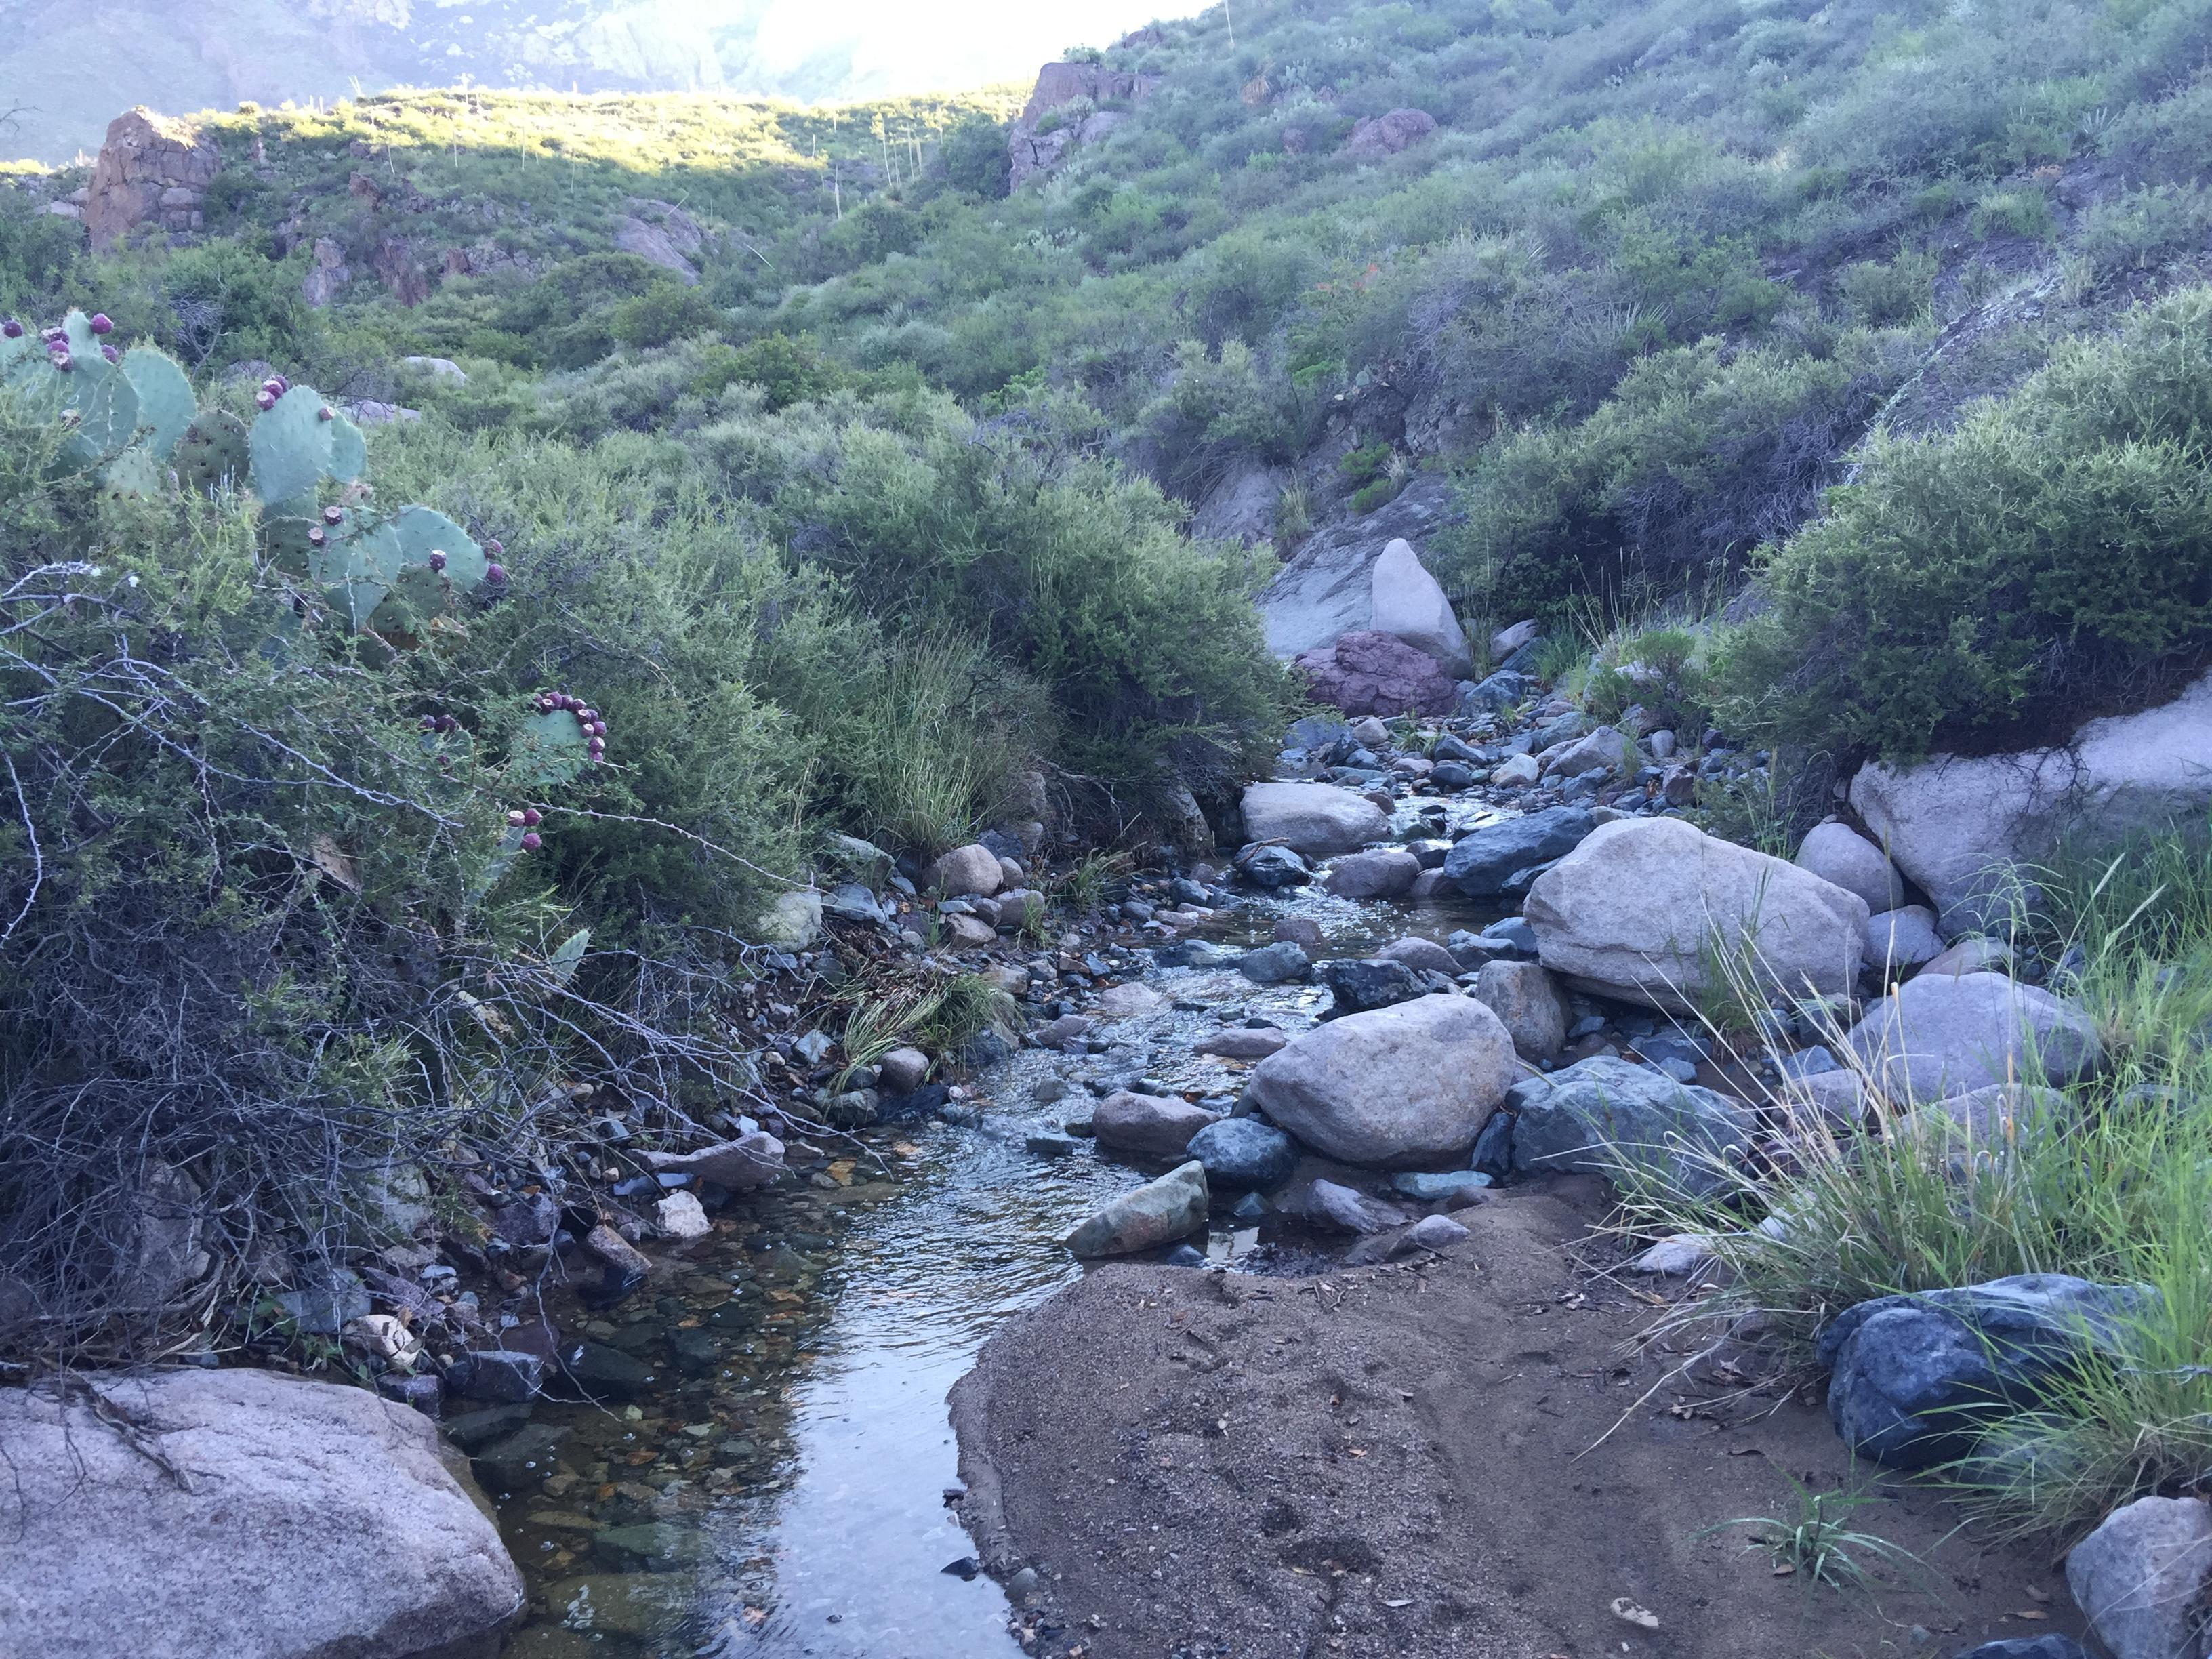 OpenNote: La Cueva Trail. This stream leads up to the waterfall in the dessert Las Cruces